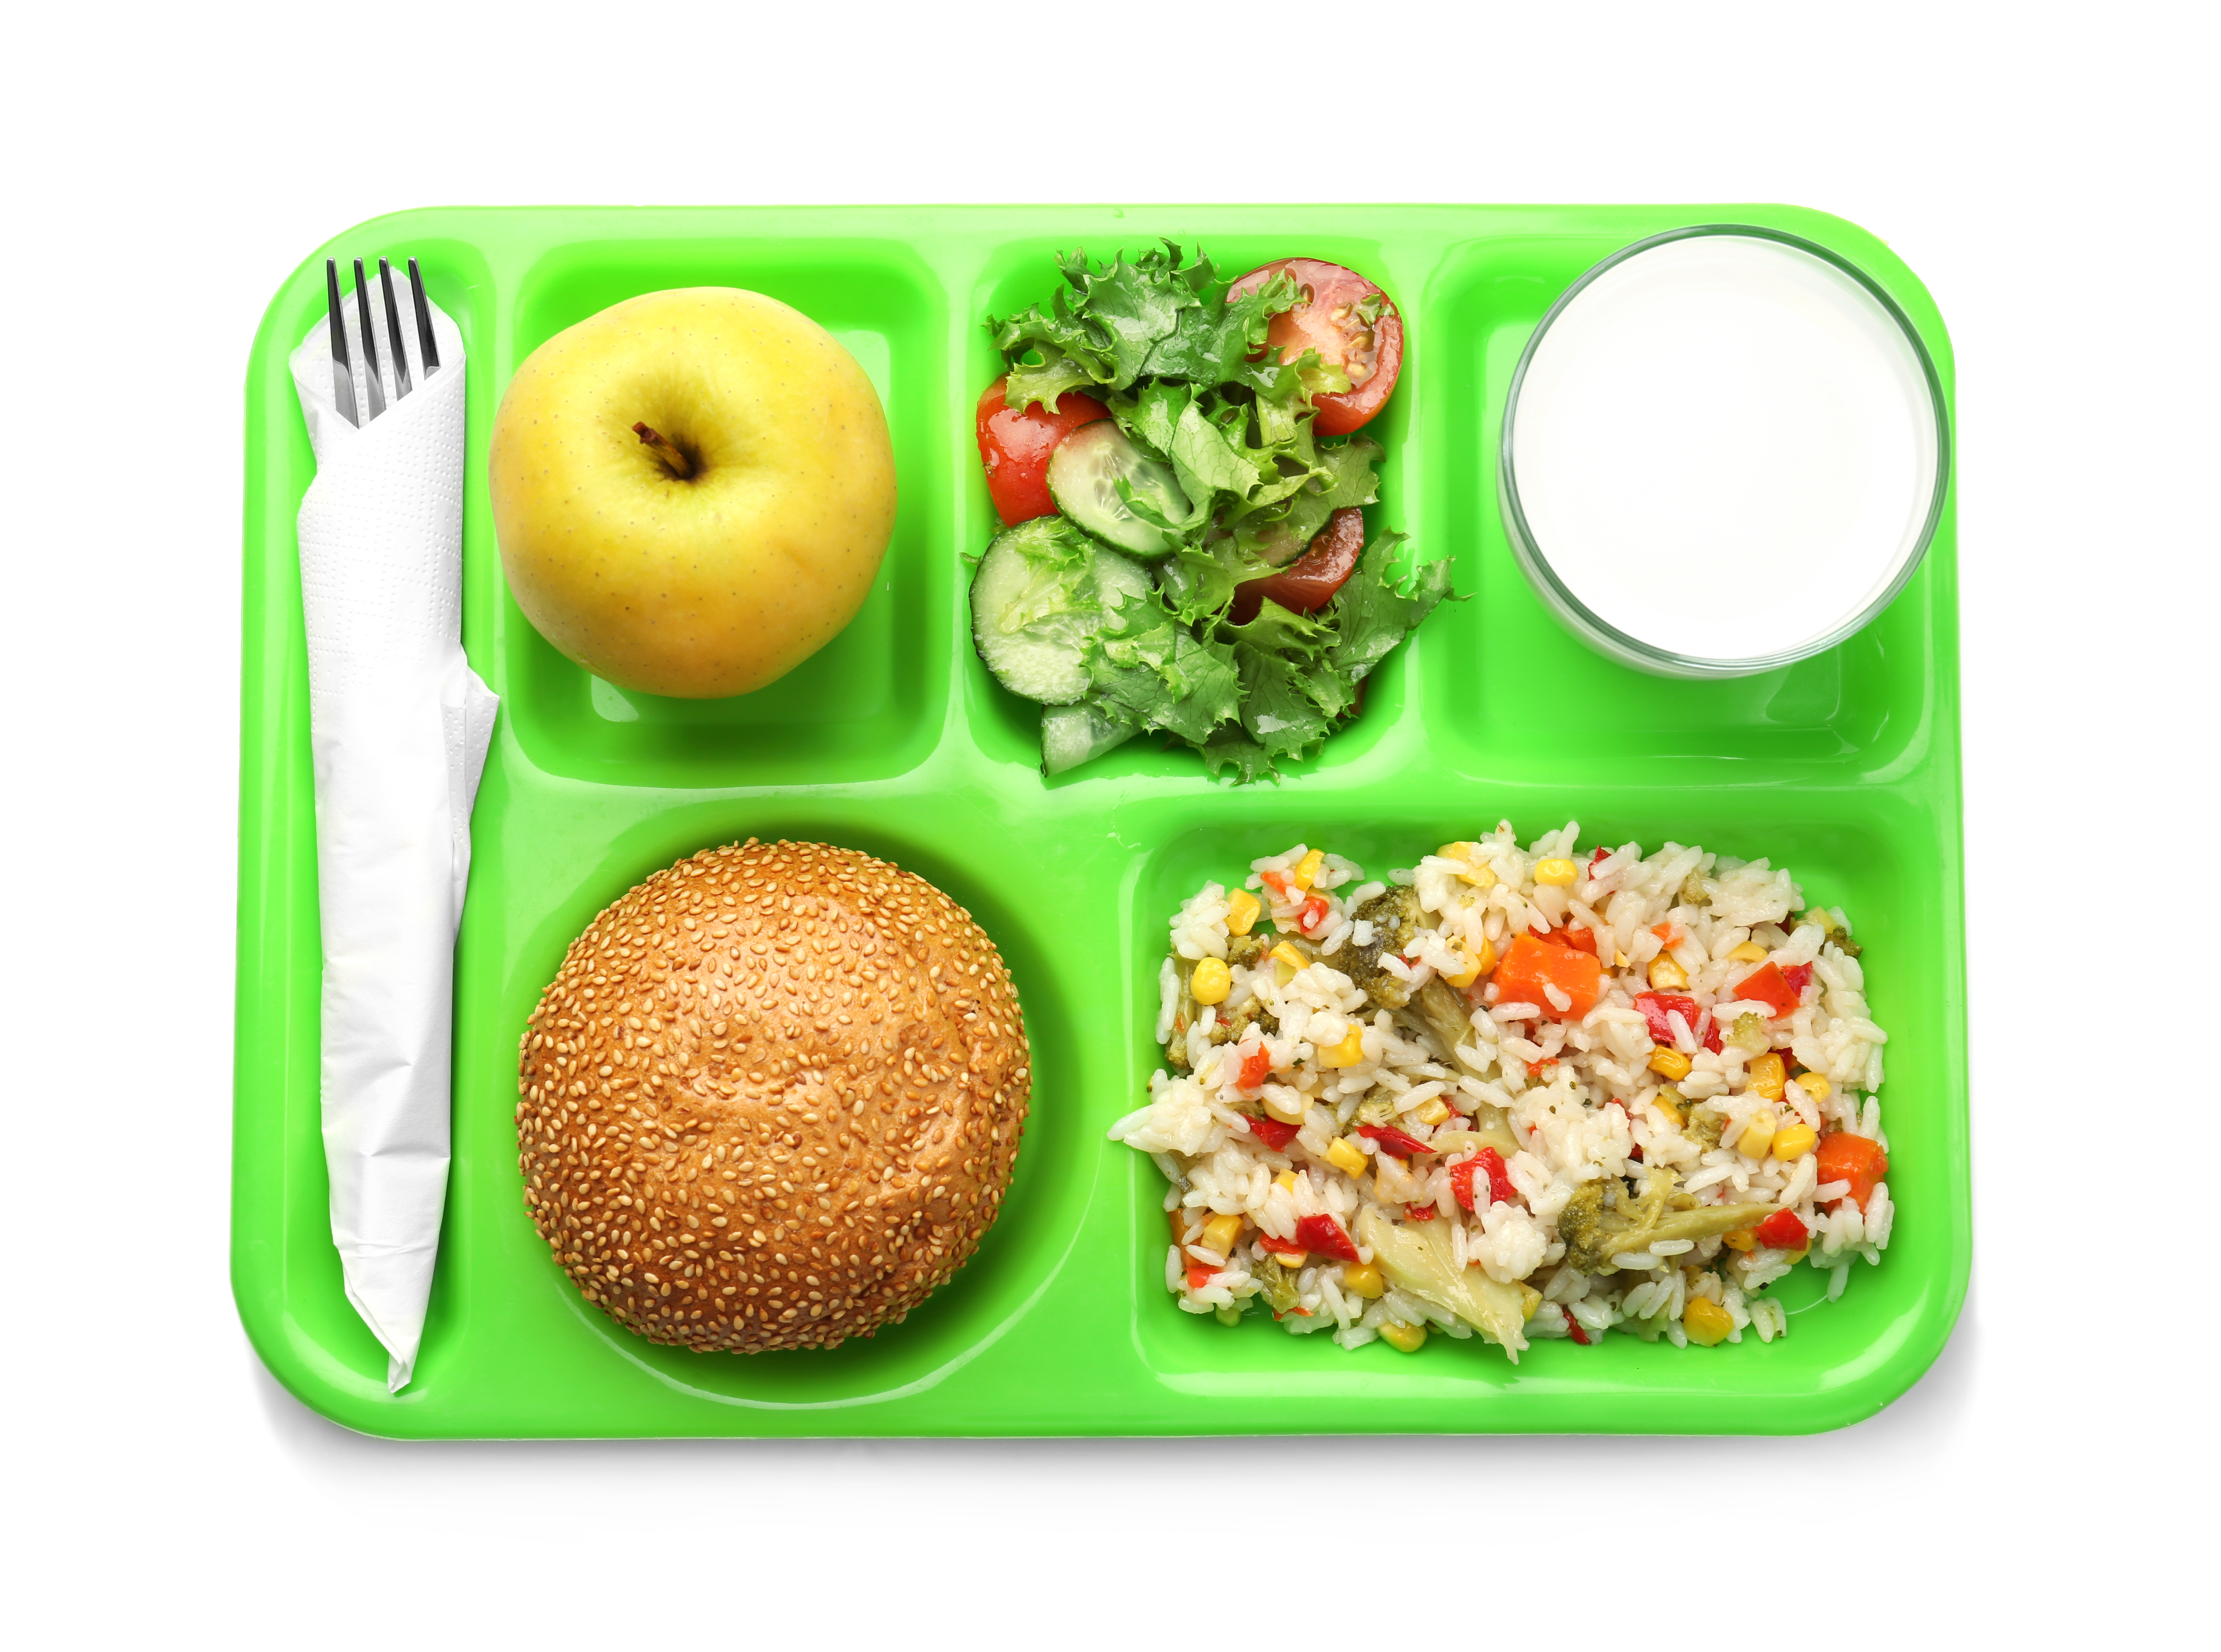 Overhead photo of green cafeteria tray with various dishes in each compartment, including an apple, a salad, and a burger.